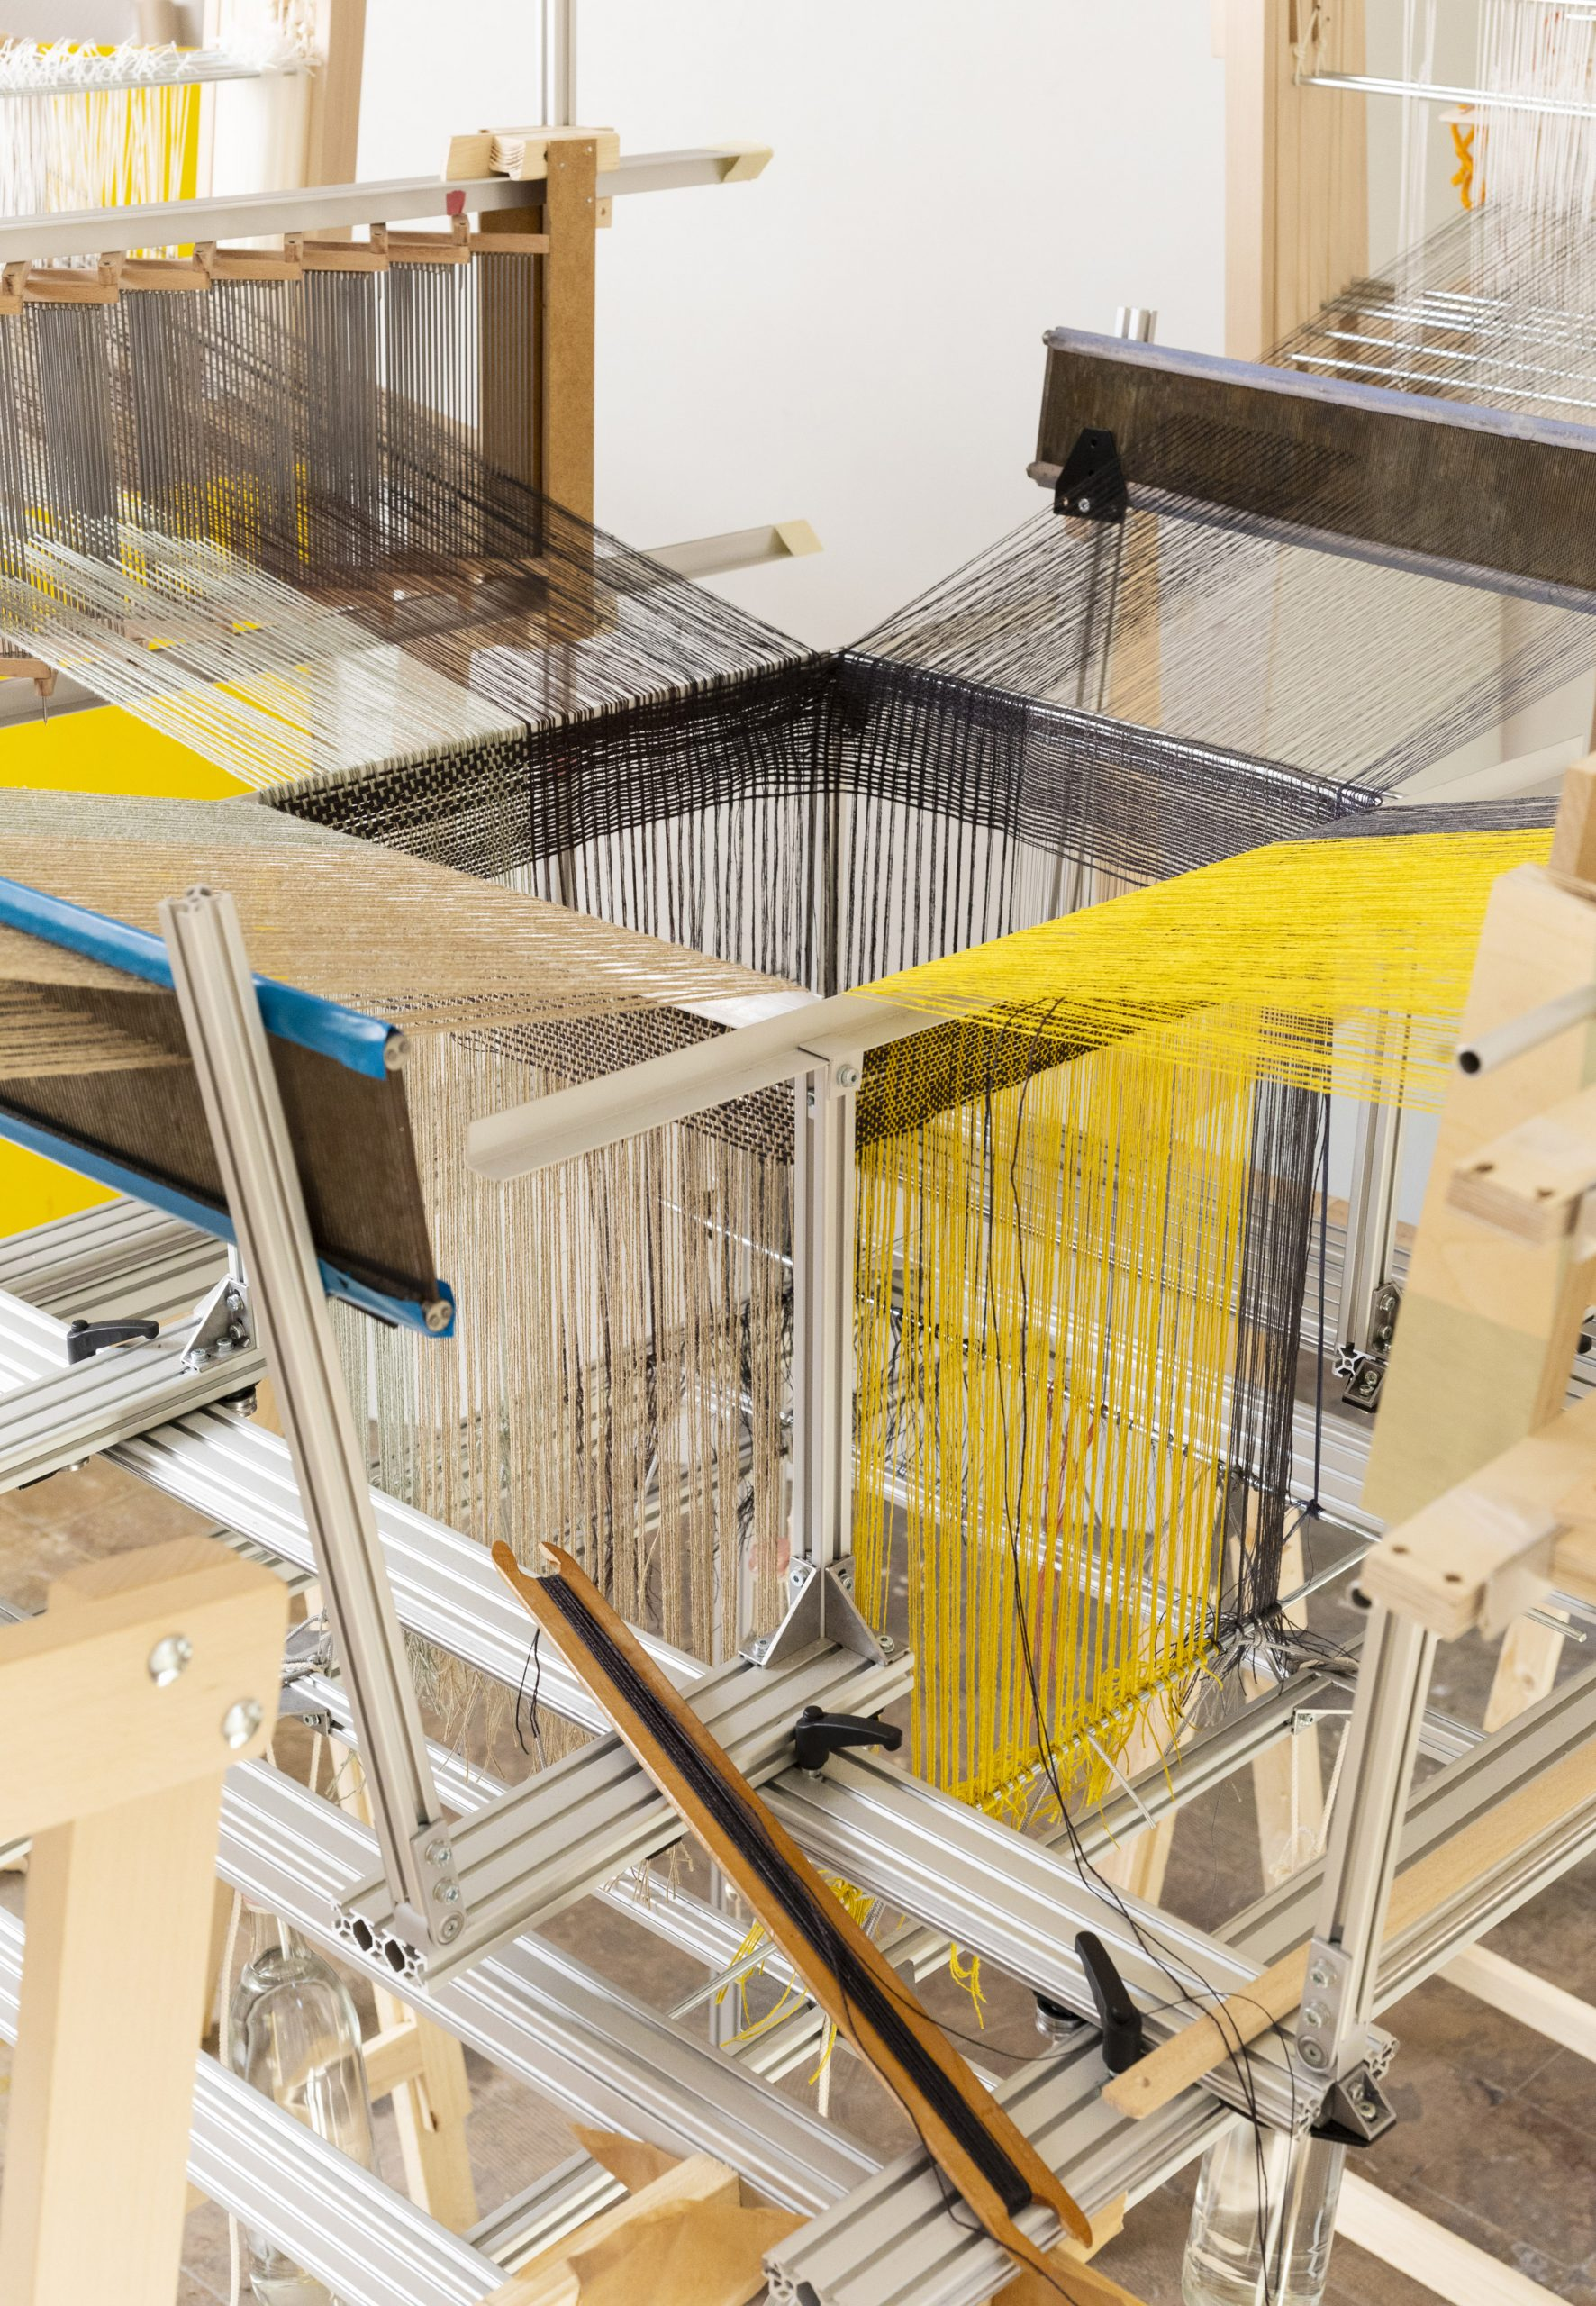 Seamless Loom as exhibited at the Woven Cosmos exhibition at Berlin Gropius Bau